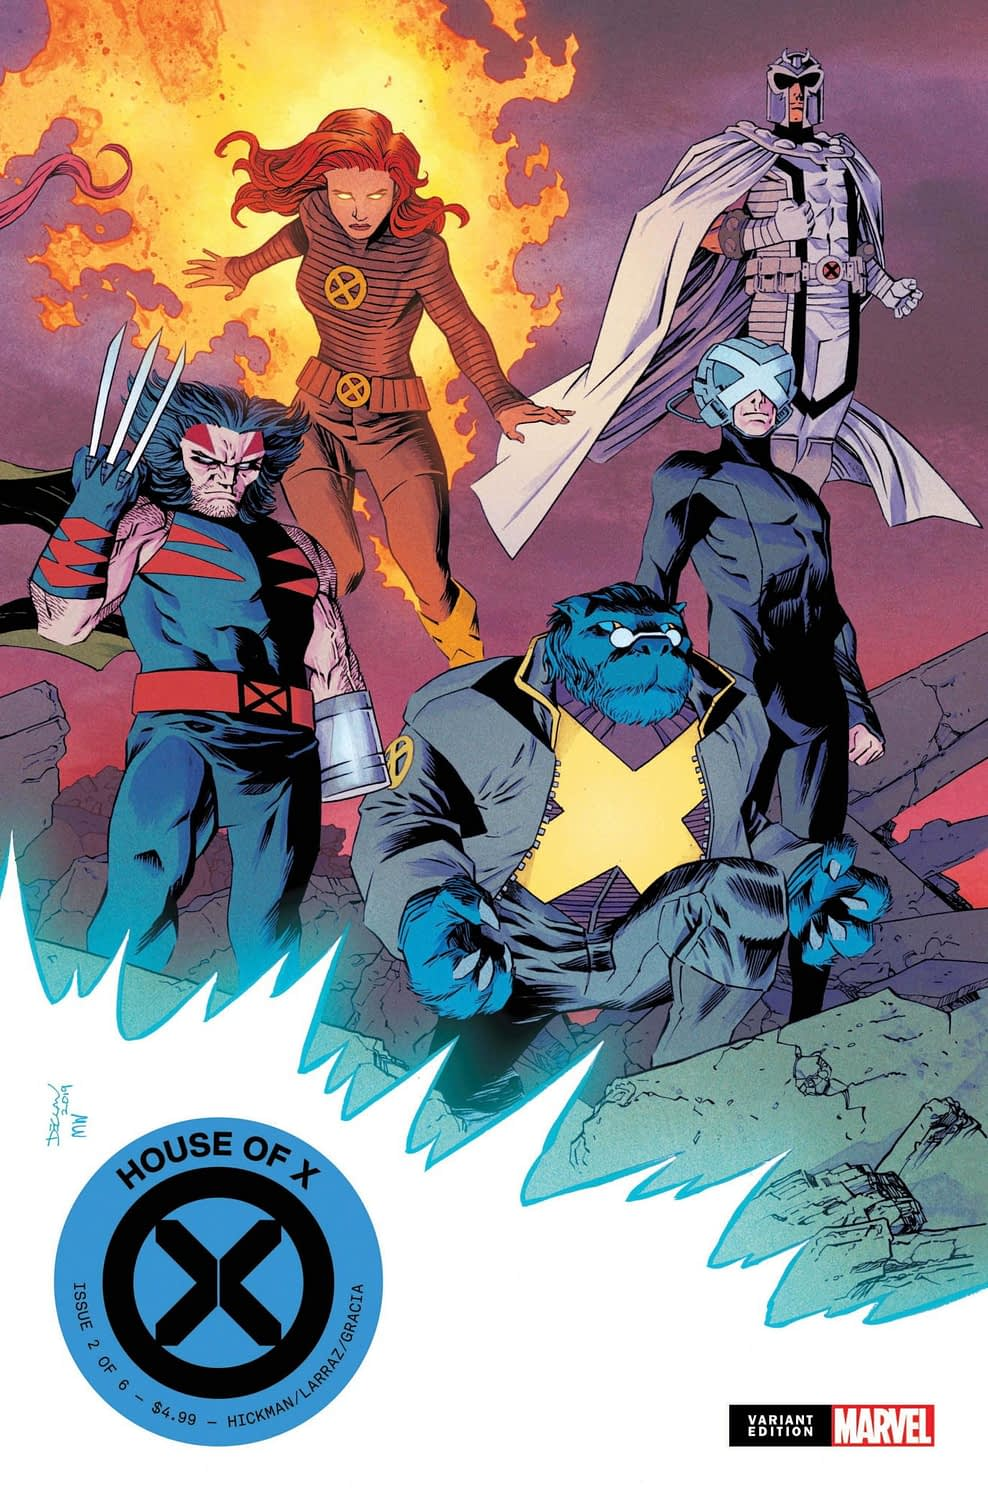 2019 Marvel Unlimited Plus Members Will Get Shalvey House of X Variants, Exclusive Deadpool Figure